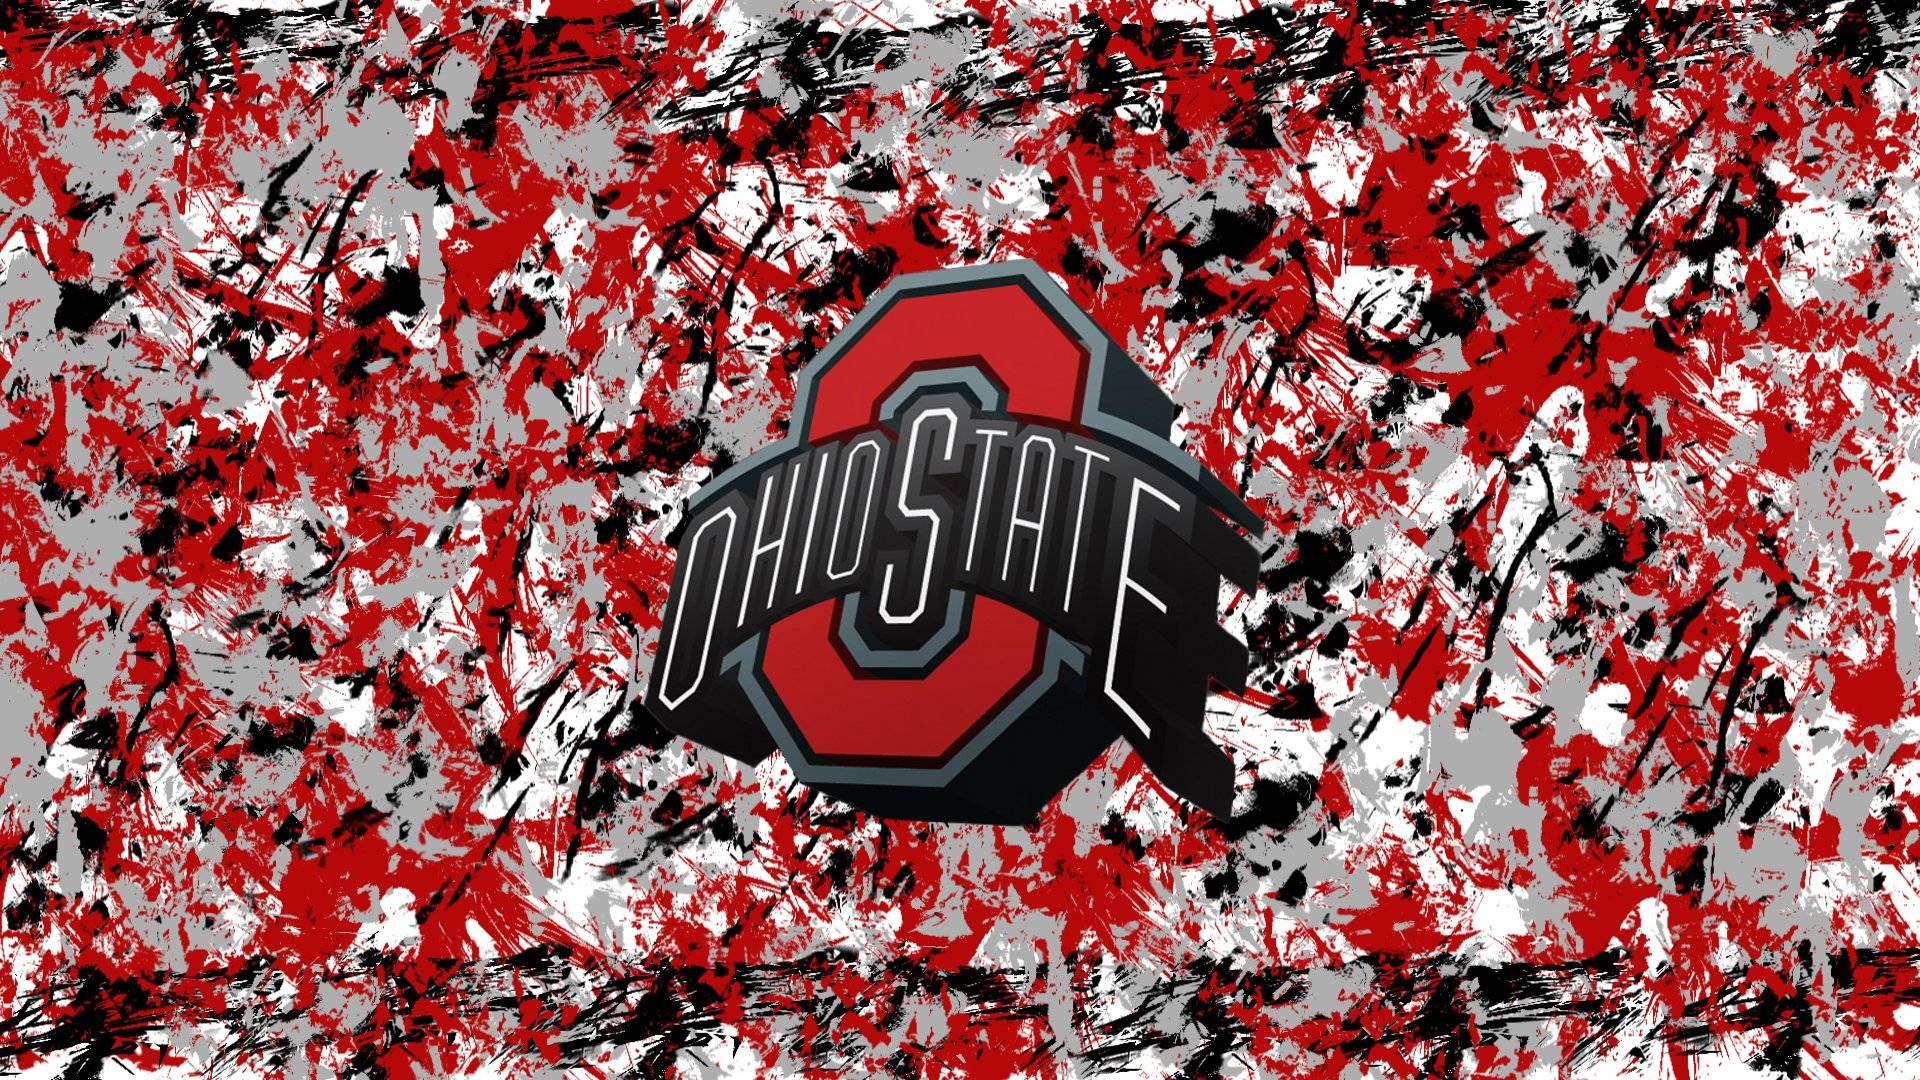 OHIO STATE BUCKEYES College Football 19 Wallpaper